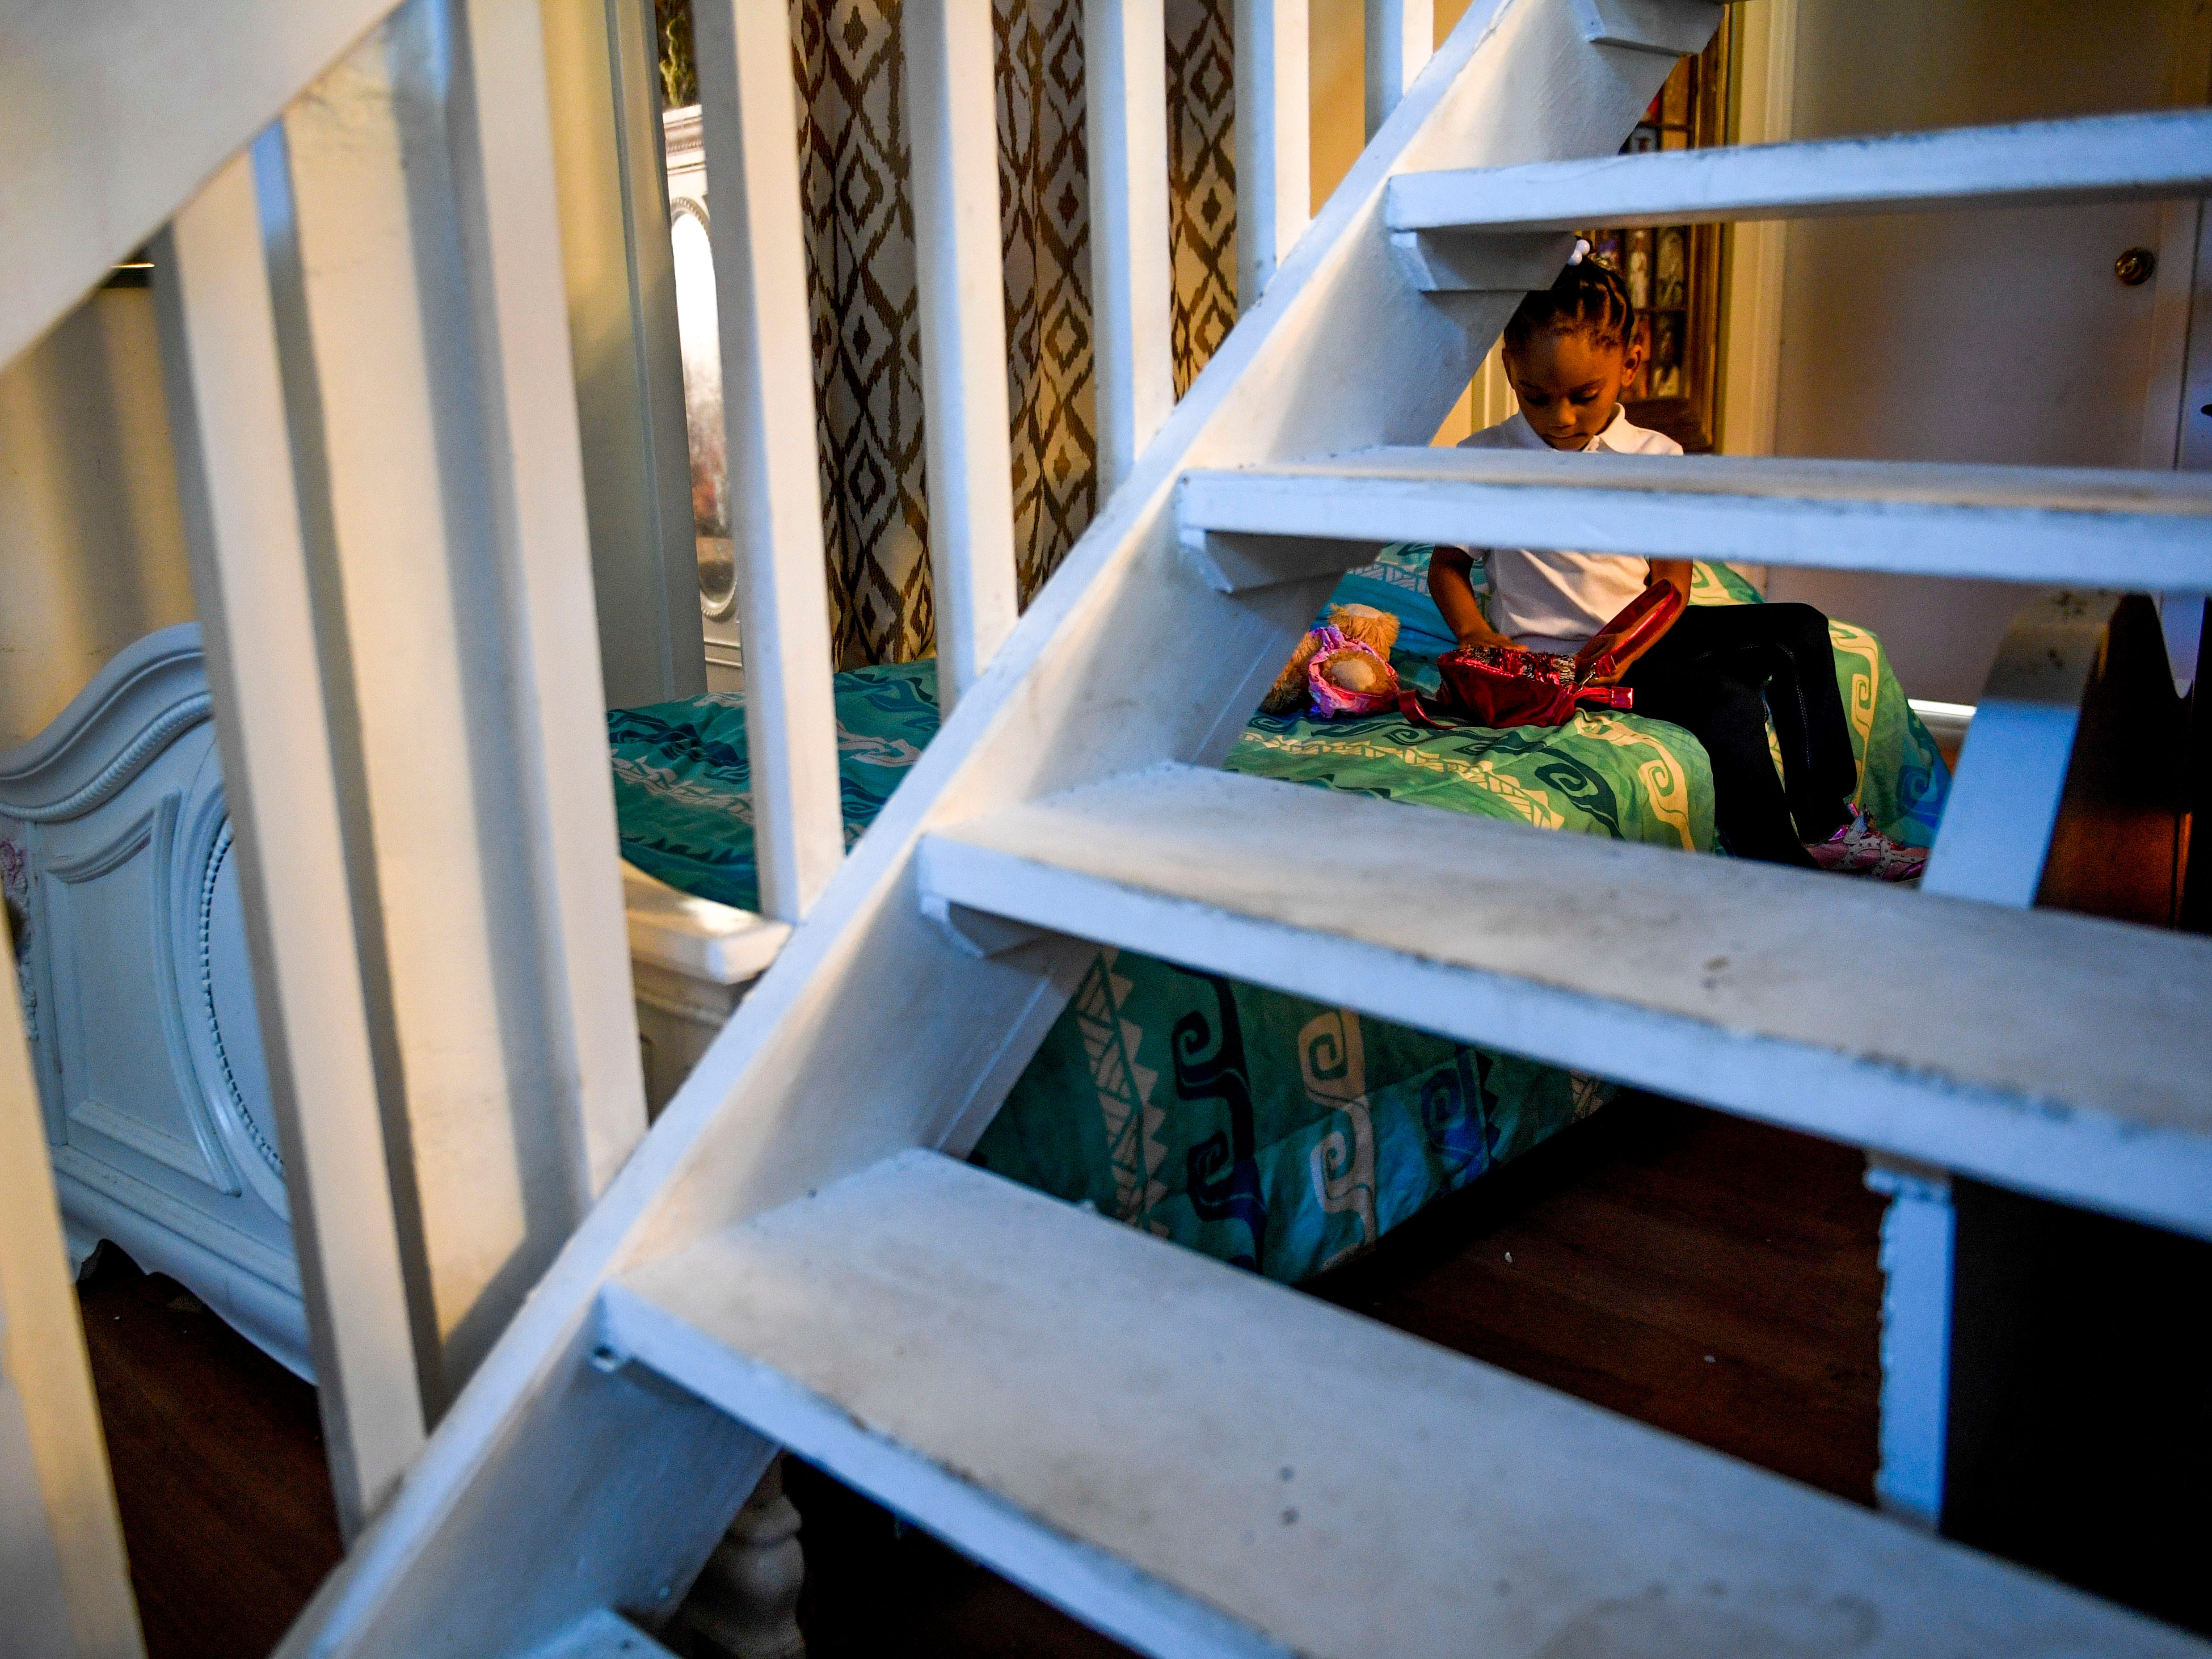 Jaliyah Allen plays with toys while sitting on a spare bed for guests tucked behind the stairs at the home of Martha Epperson in Jackson, Tenn., on Wednesday, Nov. 7, 2018.